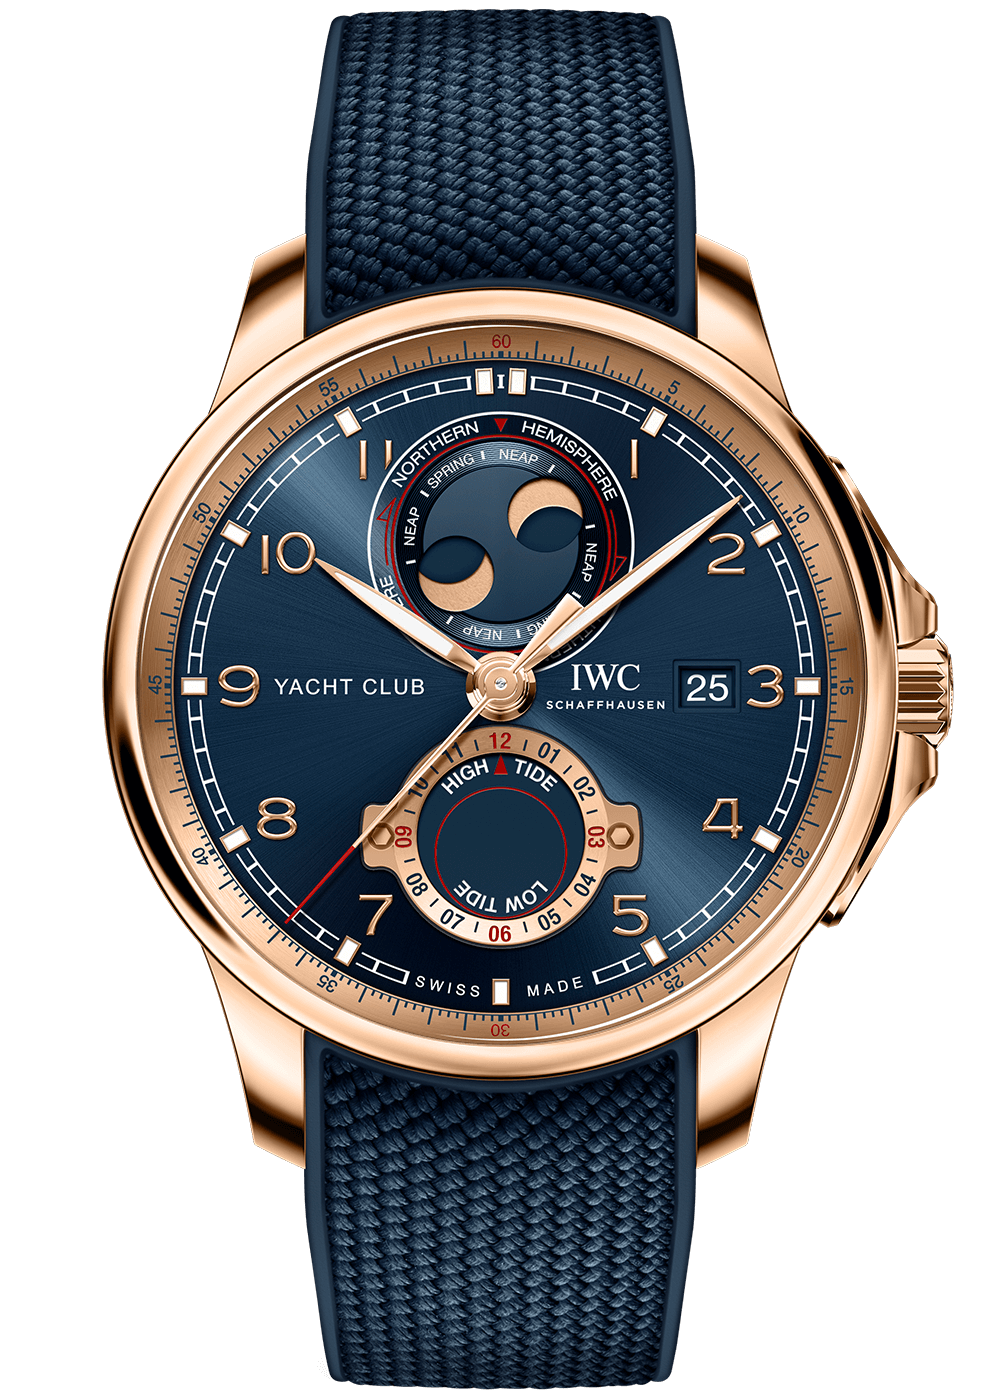 iwc-portugieser-yacht-club-moon-and-tide